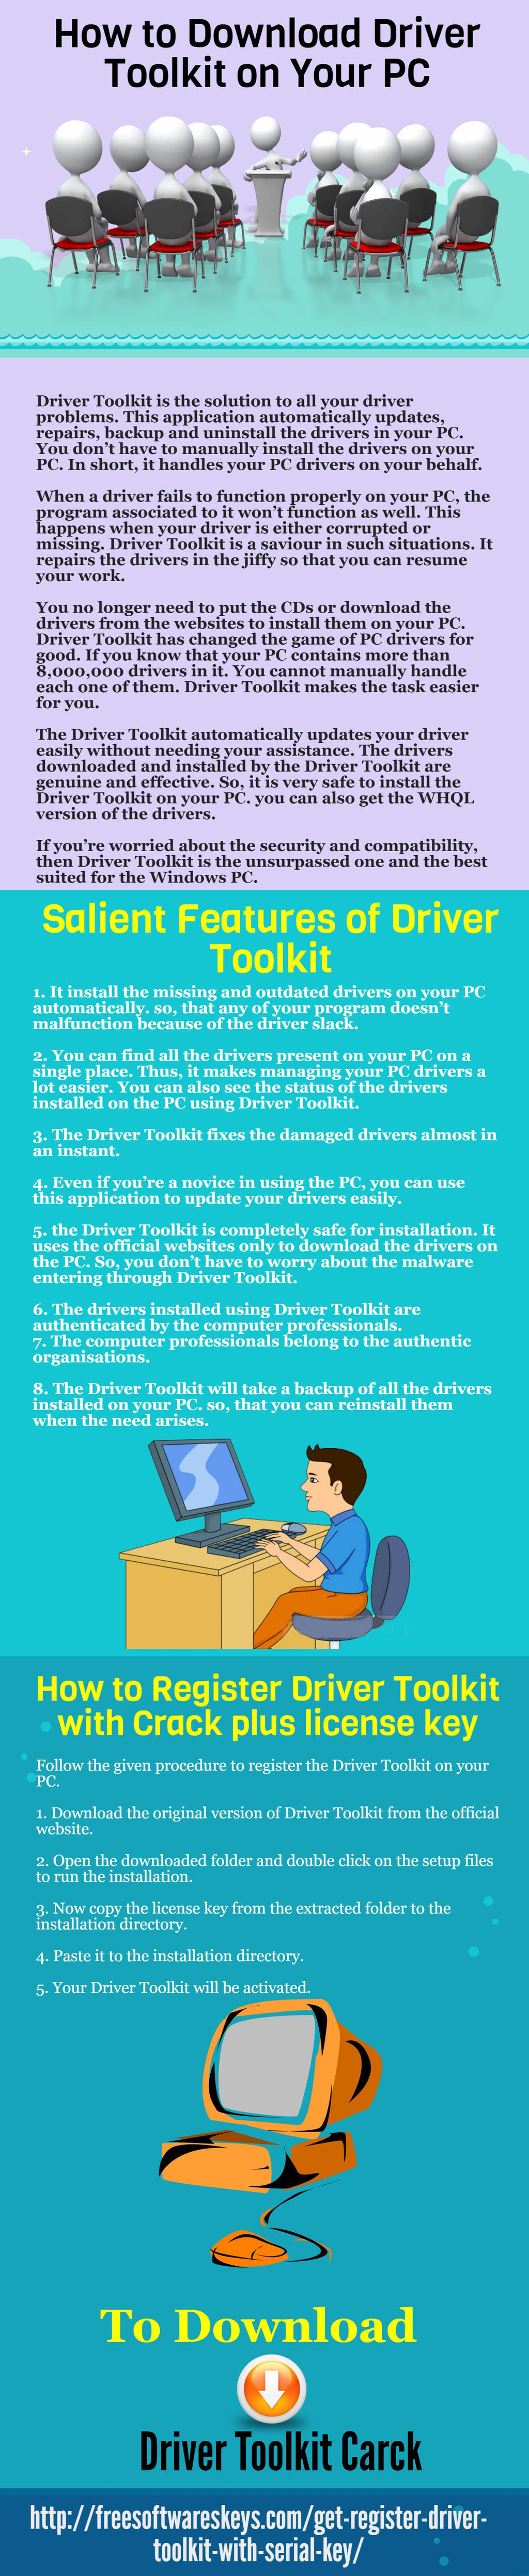 driver toolkit 8.5.1 patch download